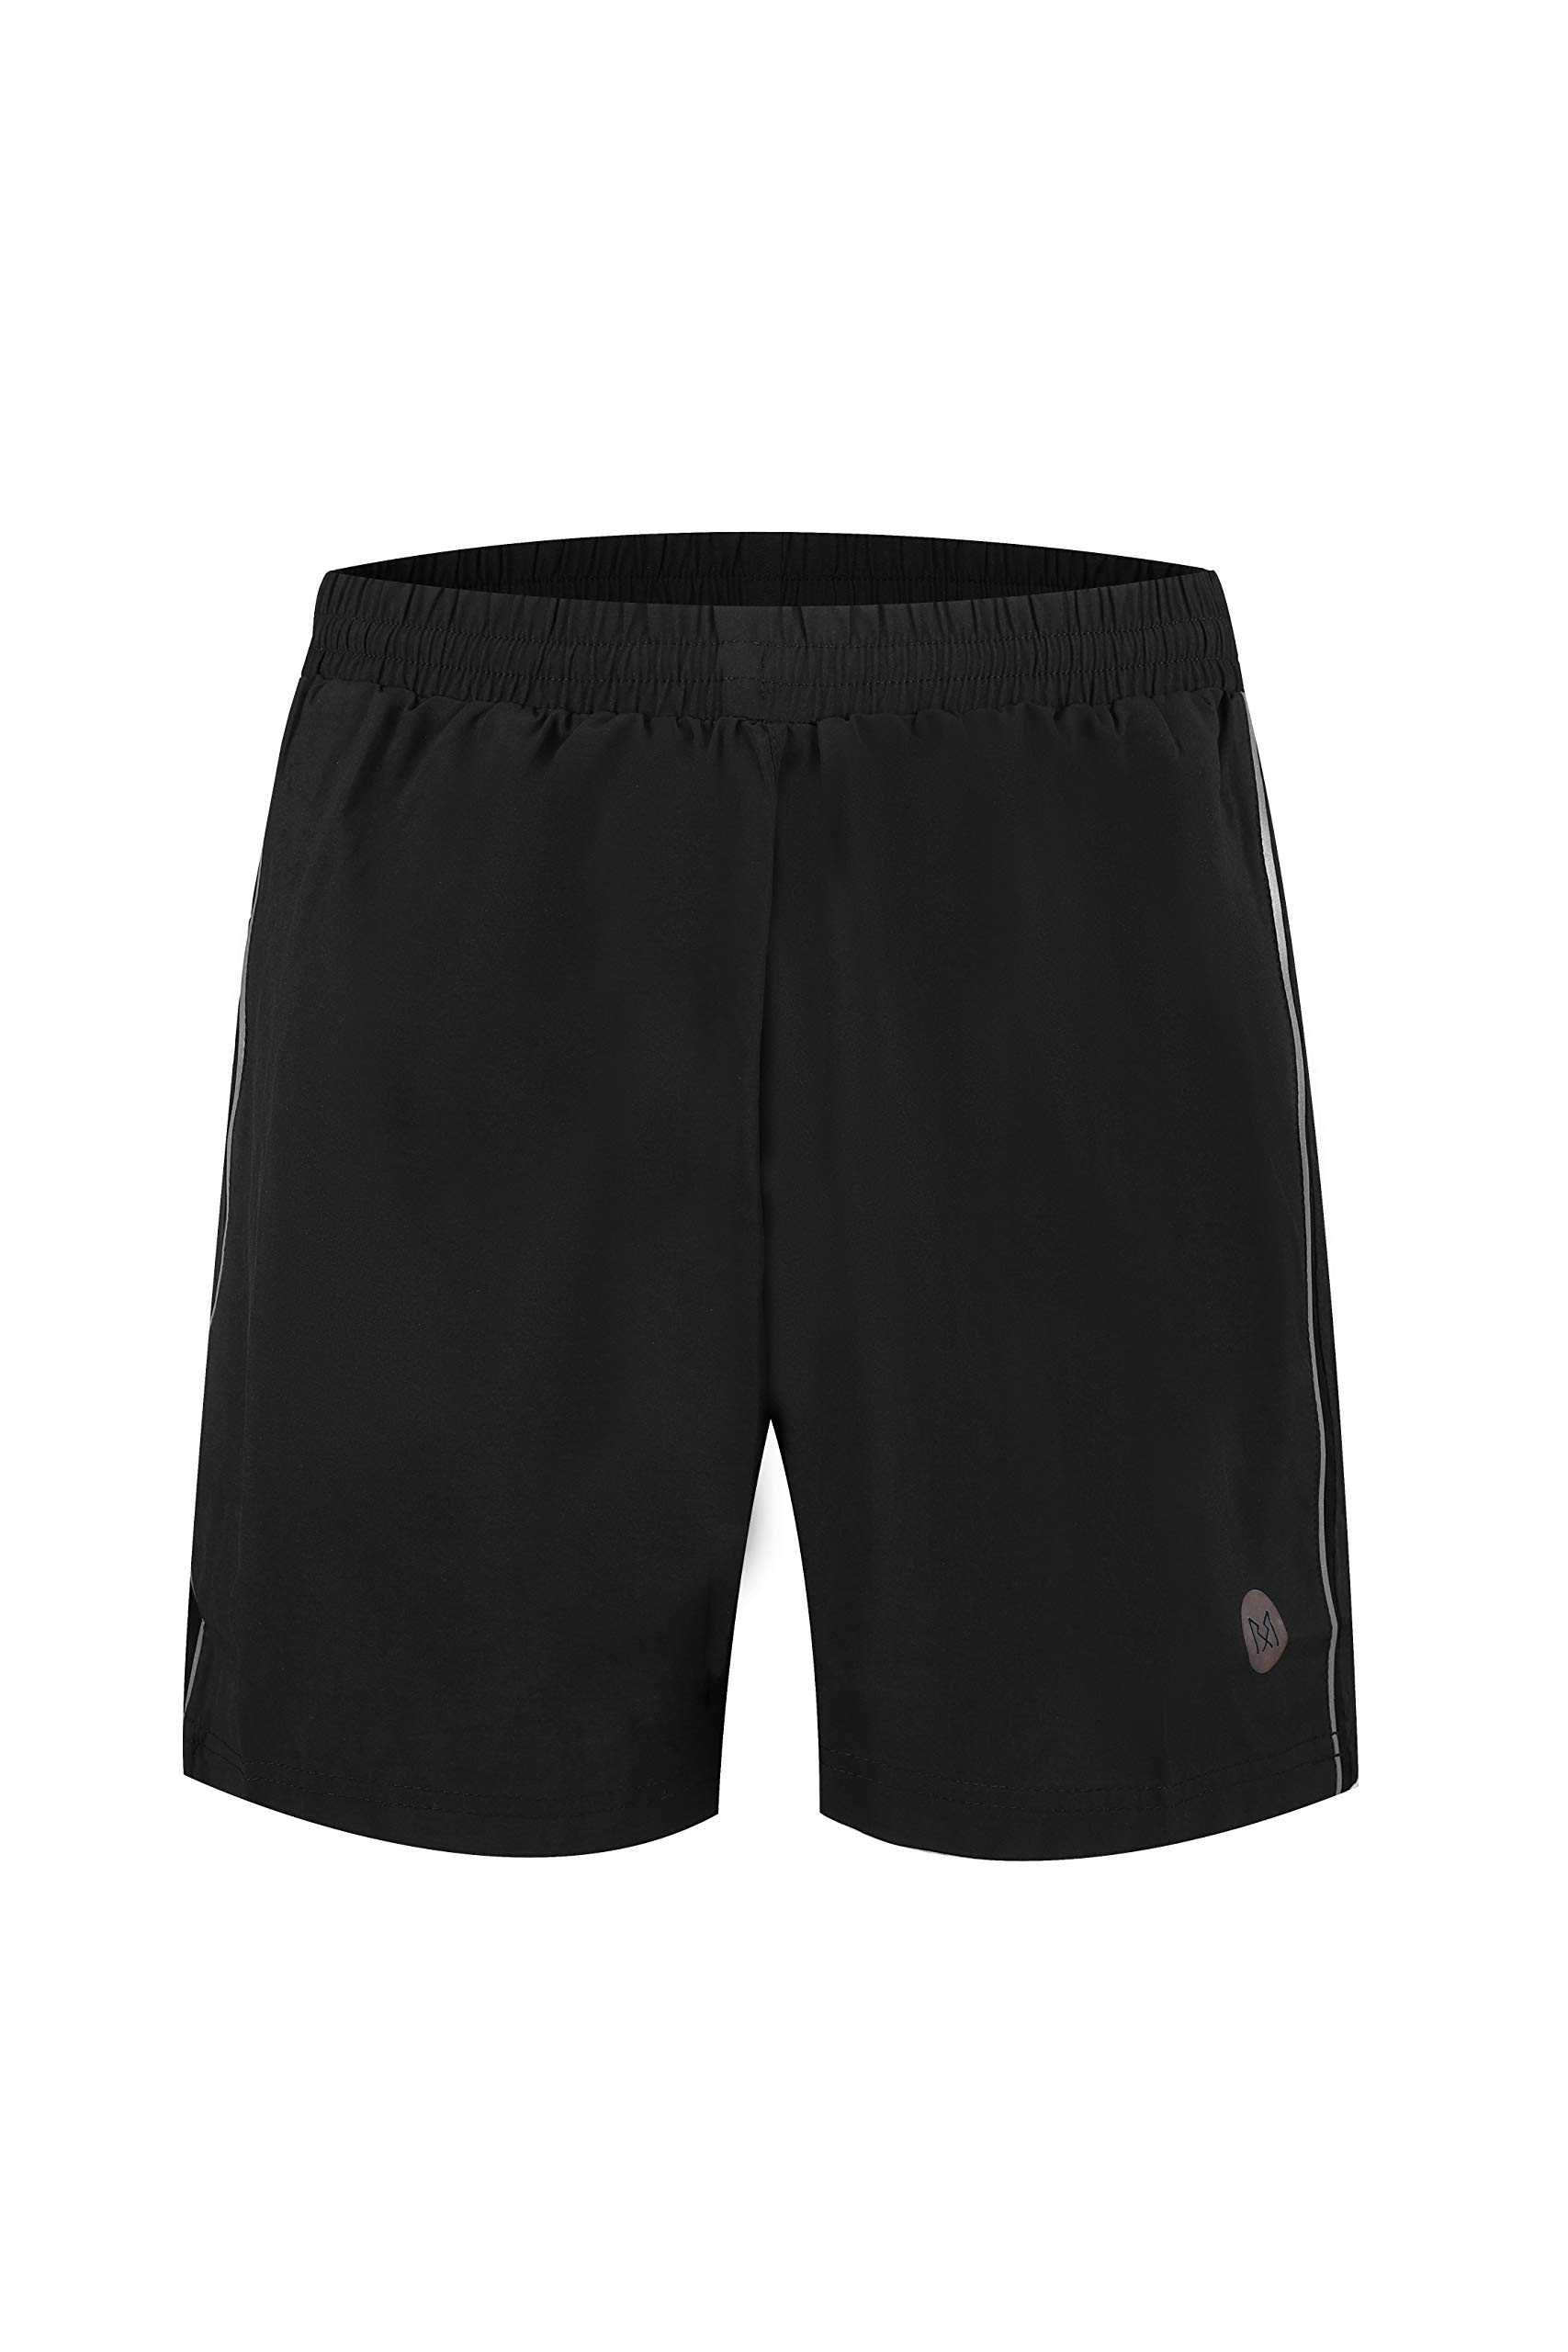 Rabrgab Men's 2-in-1 Workout Running Shorts Quick Dry Lightweight Gym Shorts Men Athletic Shorts with Zip Pockets